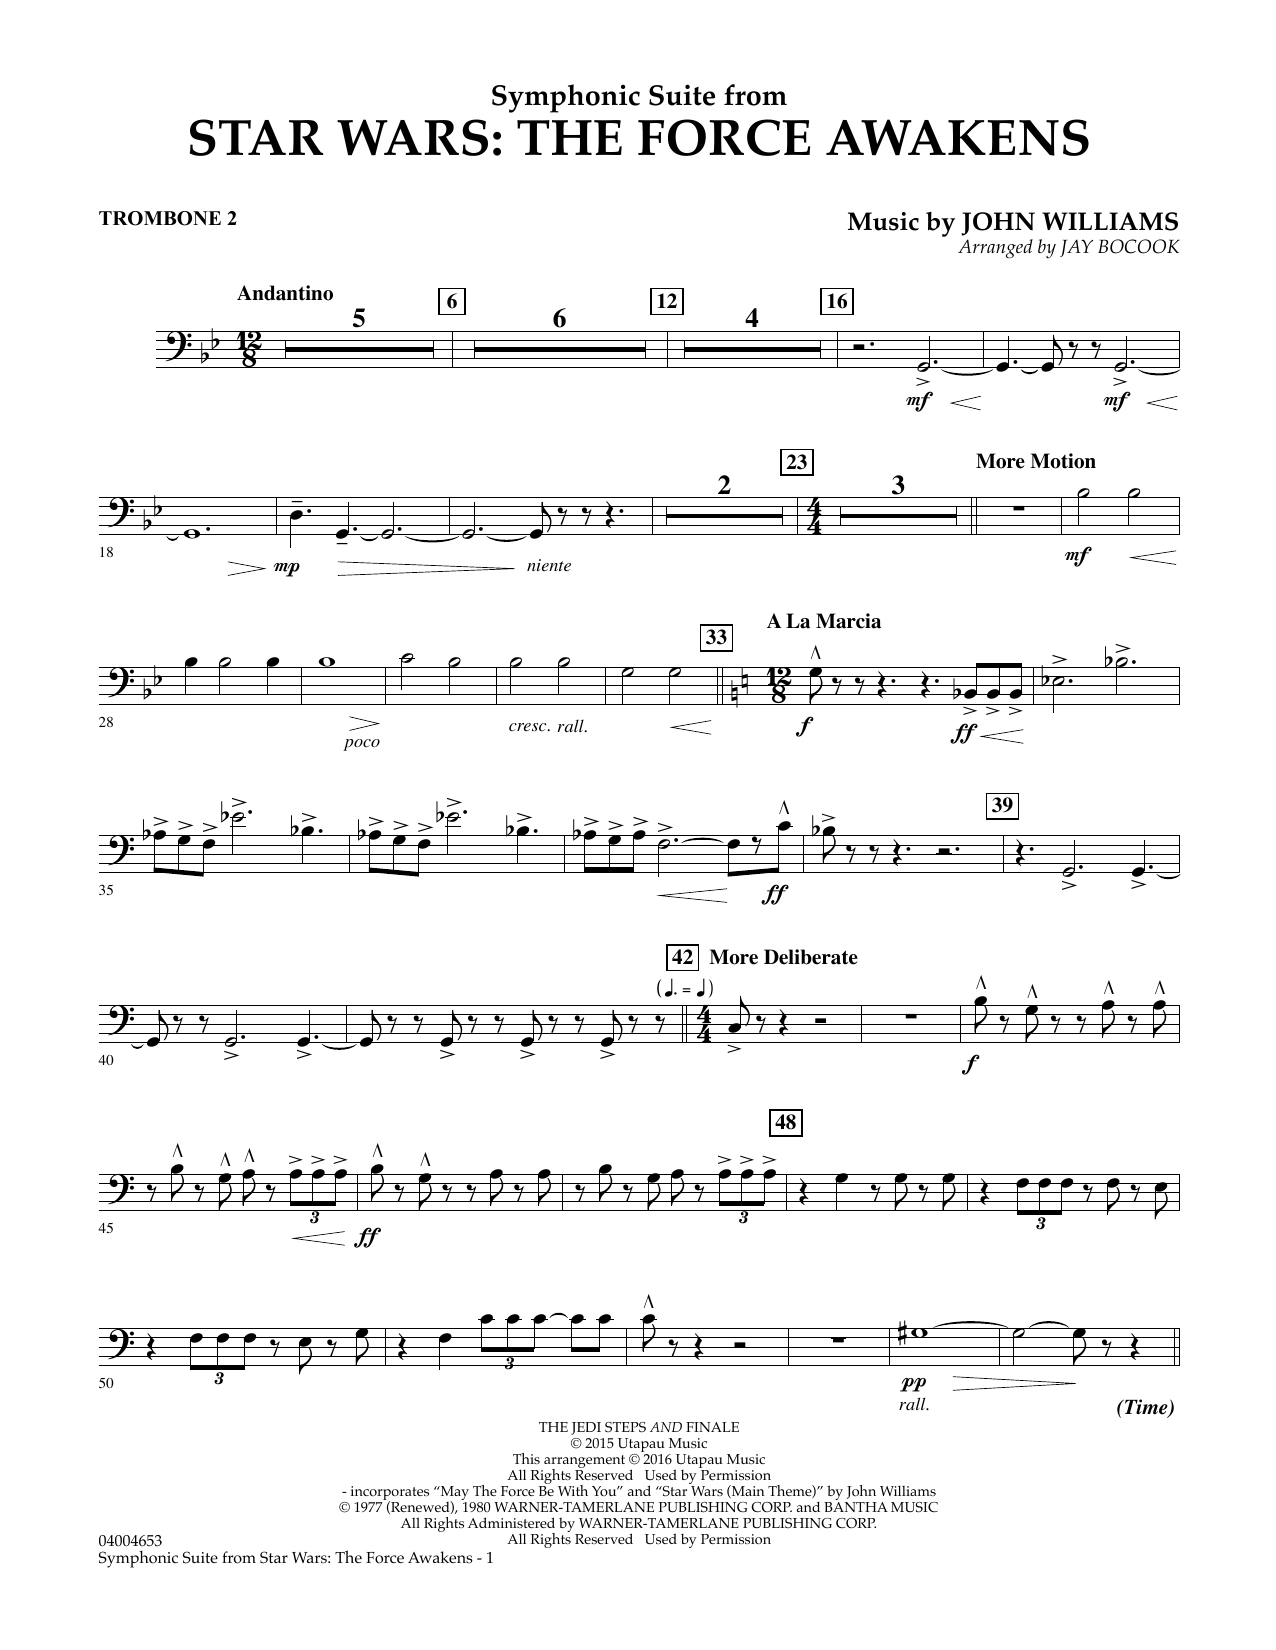 John Williams - Symphonic Suite from Star Wars: The Force Awakens - Trombone 2